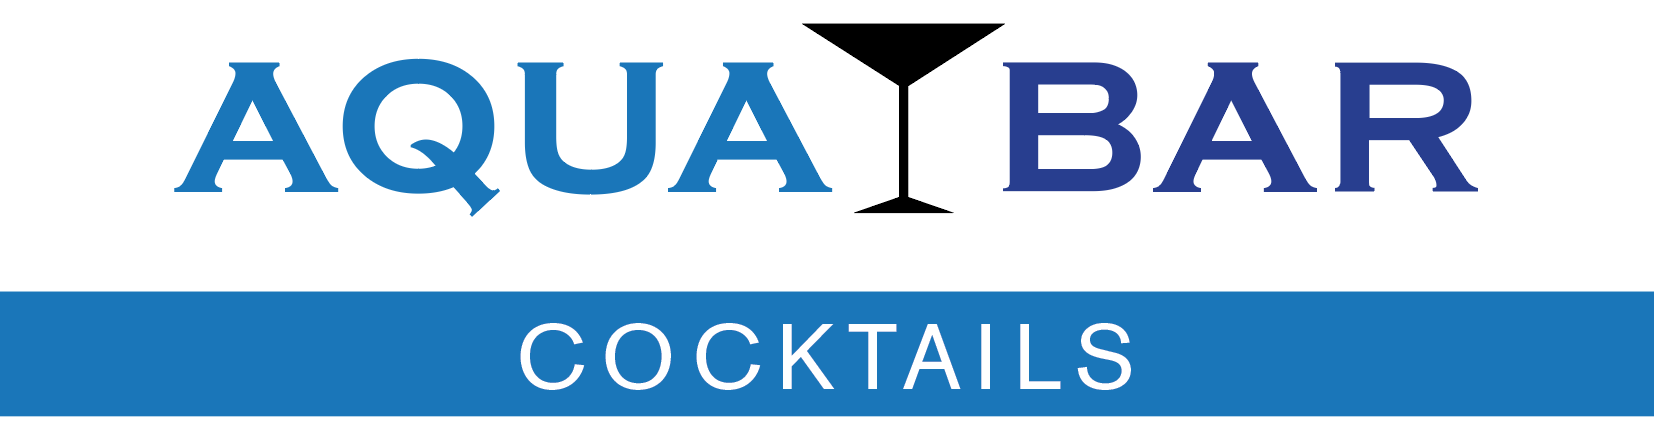 AB_cocktails-header.png